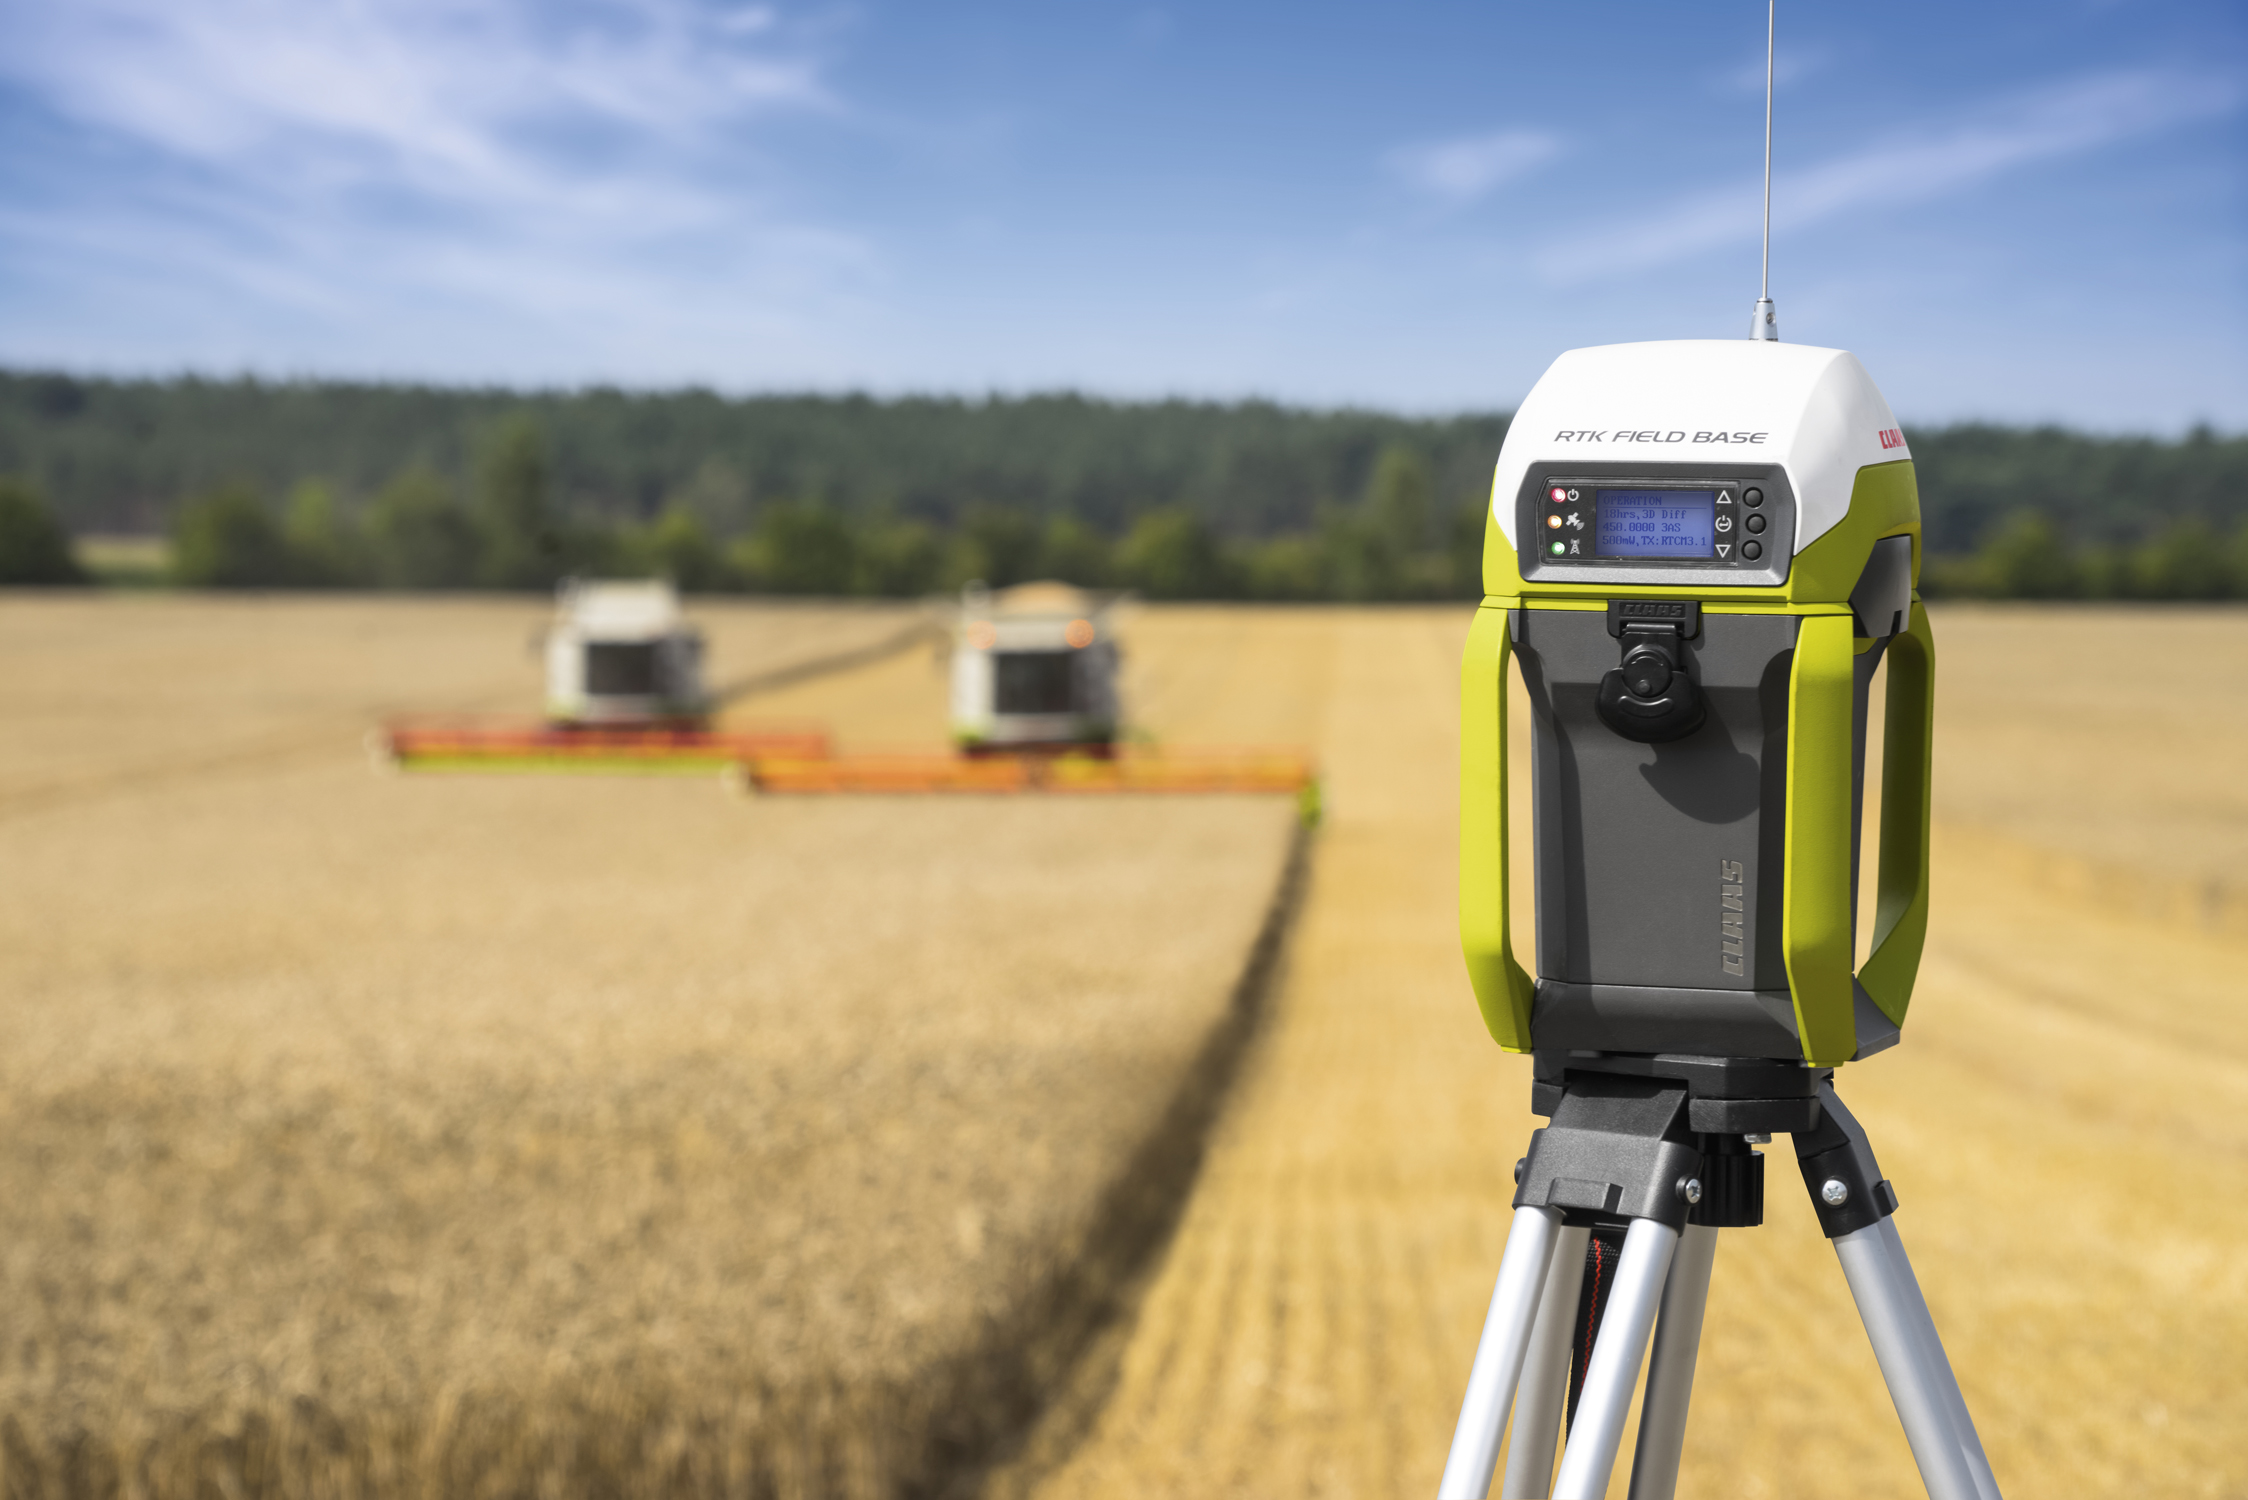 CLAAS combines high-tech and design